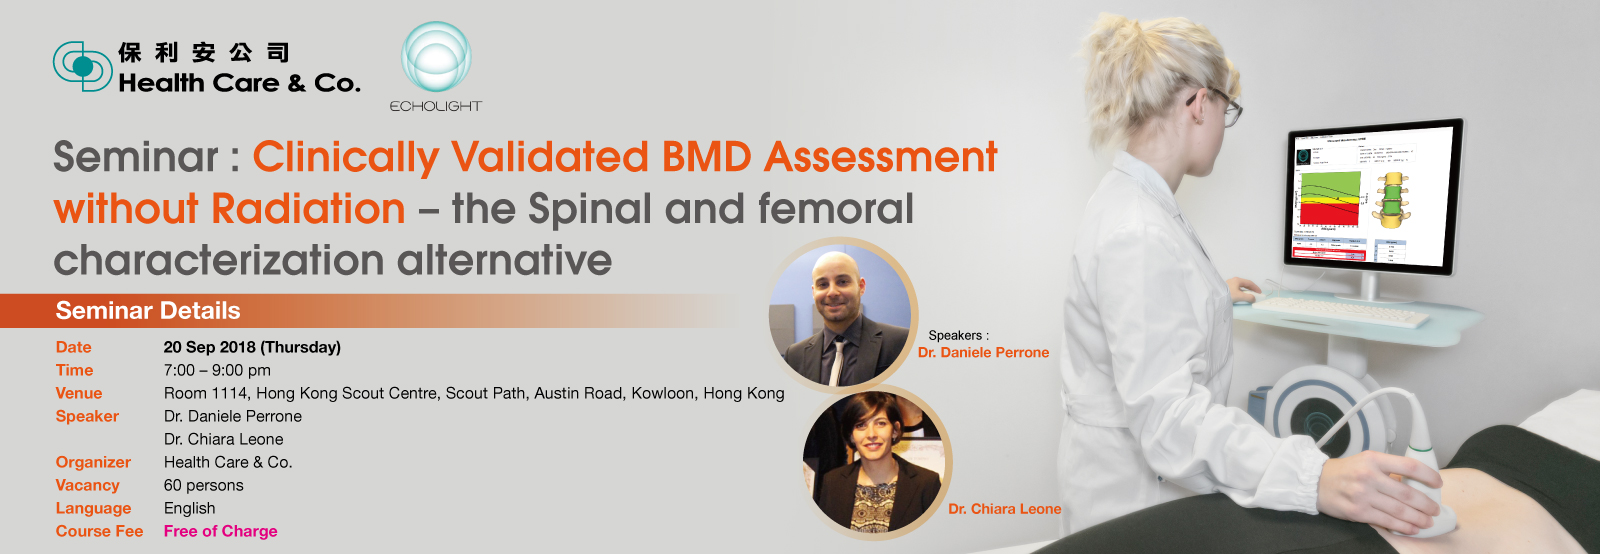 Seminar: Clinically Validated Bone Mineral Density (BMD) Assessment without Radiation – the Spinal and Femoral Characterization Alternative